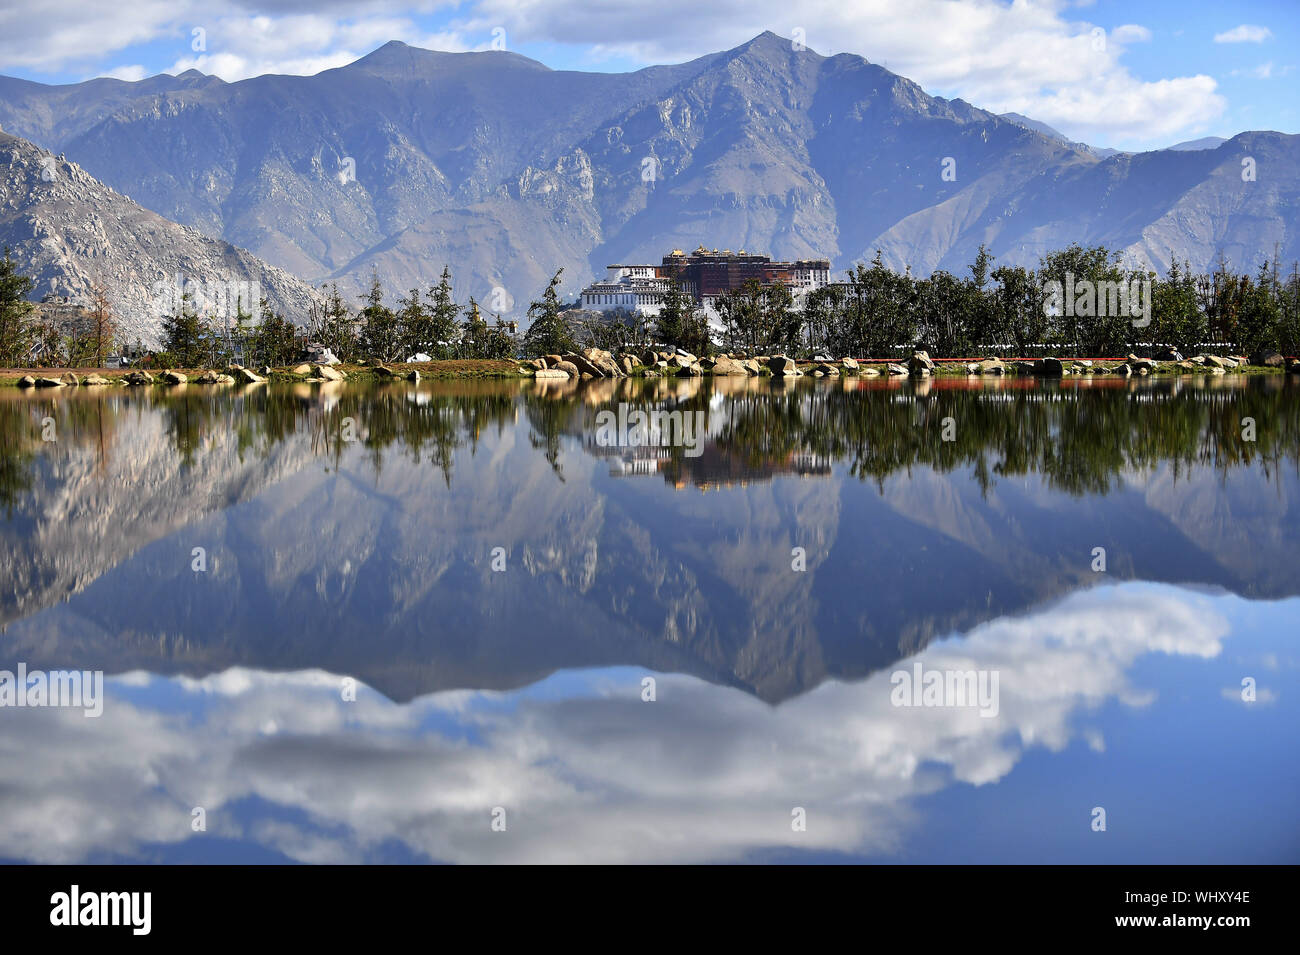 (190903) -- BEIJING, Sept. 3, 2019 (Xinhua) -- Photo taken on June 5, 2019 shows scenery of the Potala Palace in Lhasa, capital of southwest China's Tibet Autonomous Region. China has adopted the vision that lucid waters and lush mountains are invaluable assets and pursued a holistic approach to conserving its mountains, rivers, forests, farmlands, lakes, and grasslands. At the very highest levels, China is driving the way forward in the construction of an ecological civilization. (Xinhua/Chogo) Stock Photo